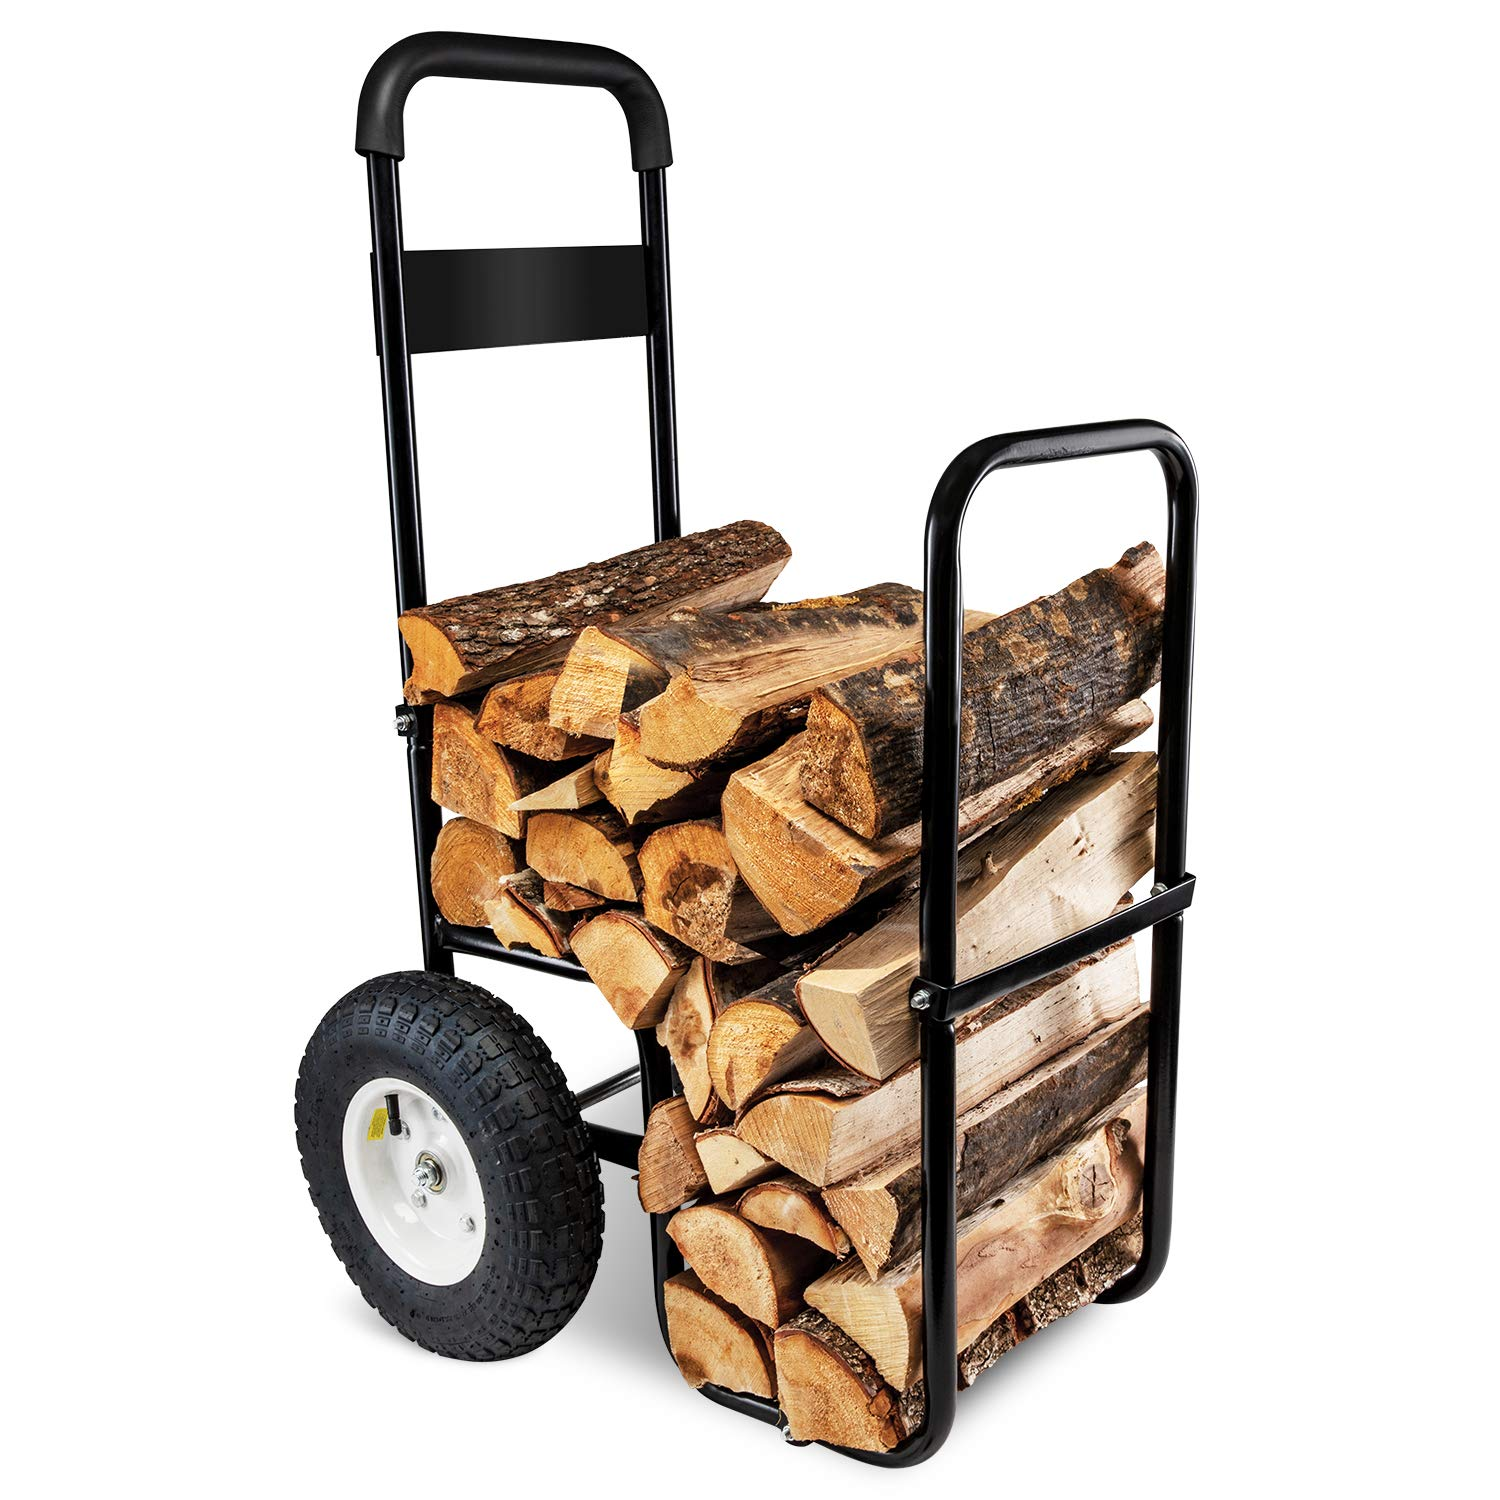 Firewood Log Hauler Log Carrier Log Cart Carrier Wood Rack Storage Mover for Outdoor and Indoor with Included Cover by RightHand